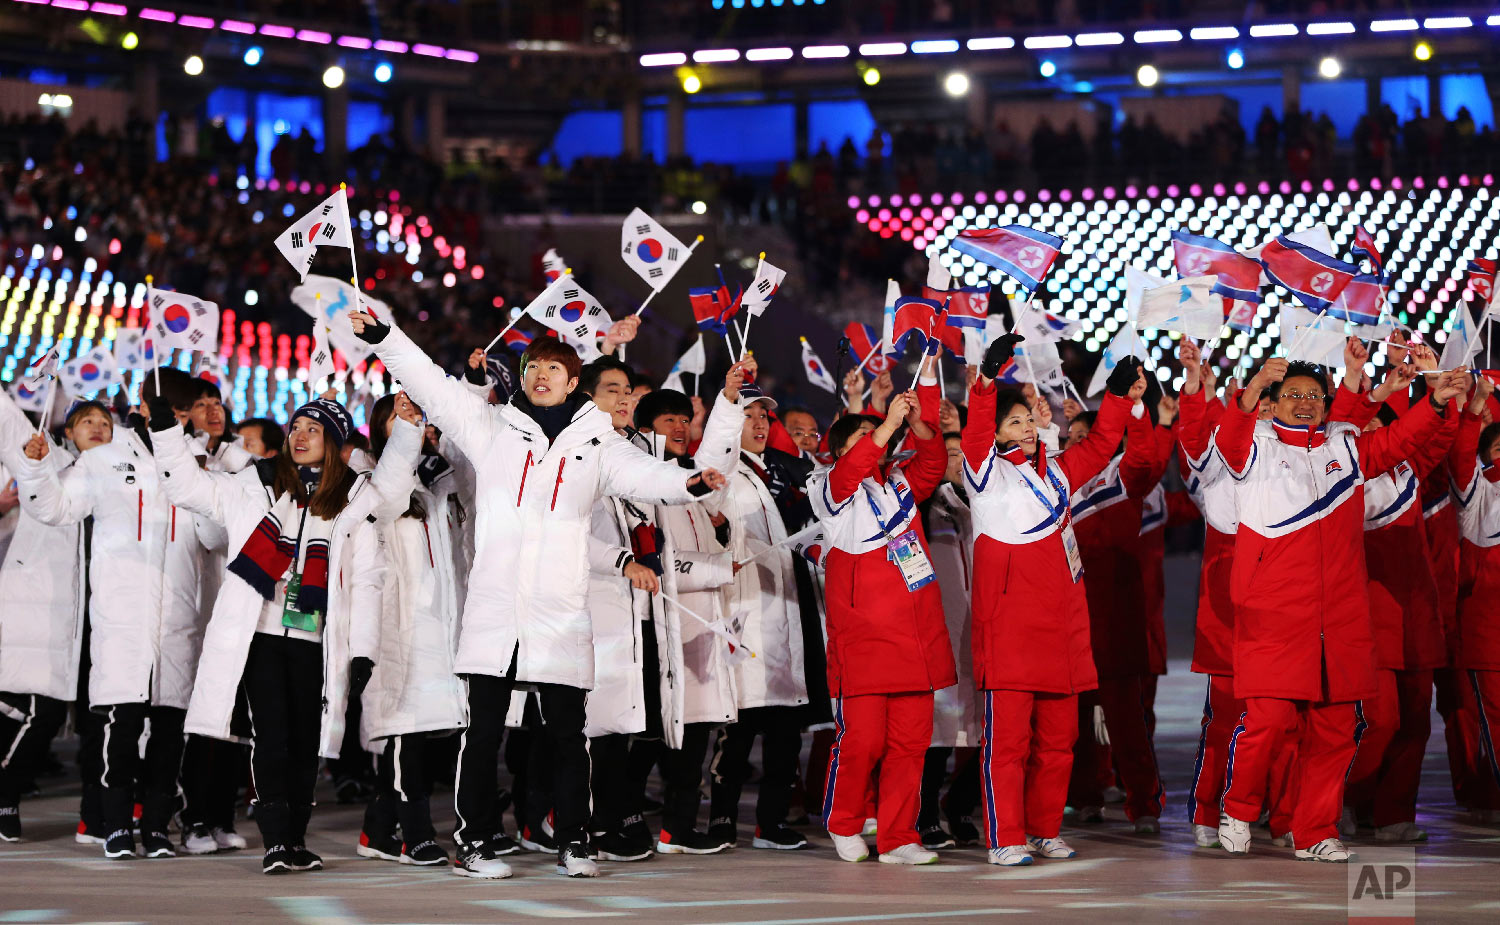 North and South Koreans wave flags together during the closing ceremony of the 2018 Winter Olympics in Pyeongchang, South Korea, on Feb. 25, 2018. (AP Photo/Natacha Pisarenko)